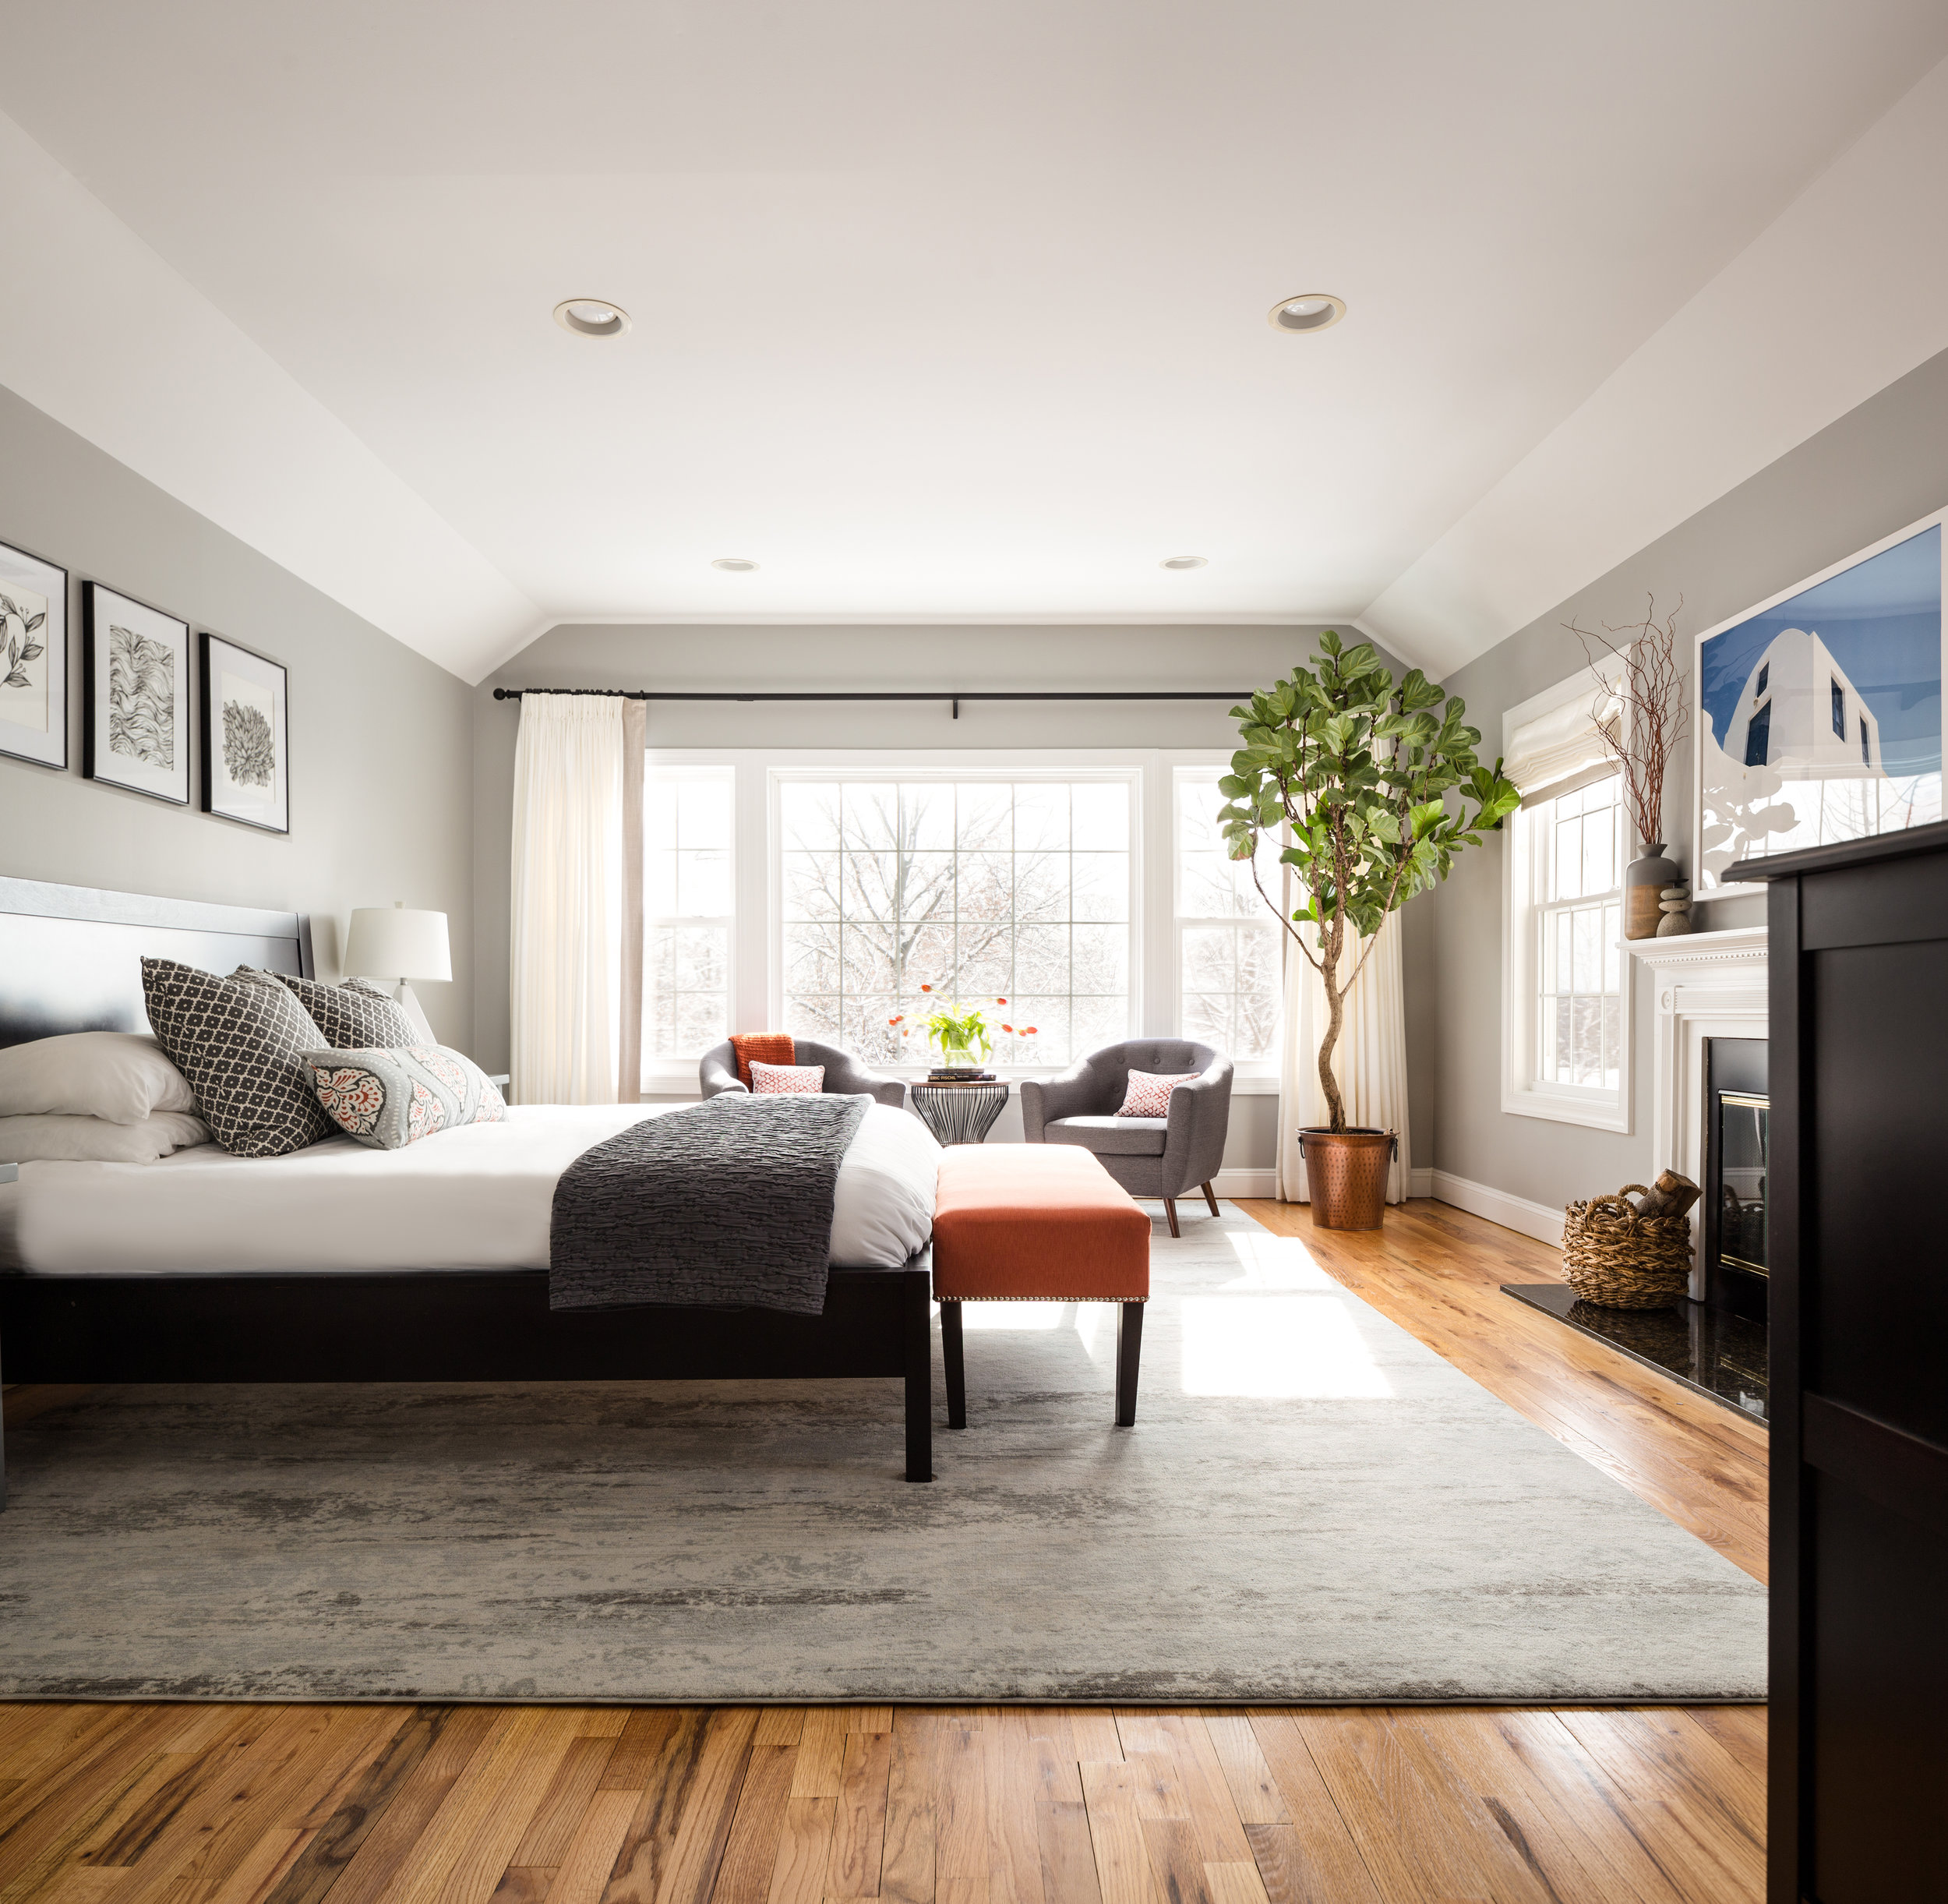 Interiors Photography - Bedroom Space